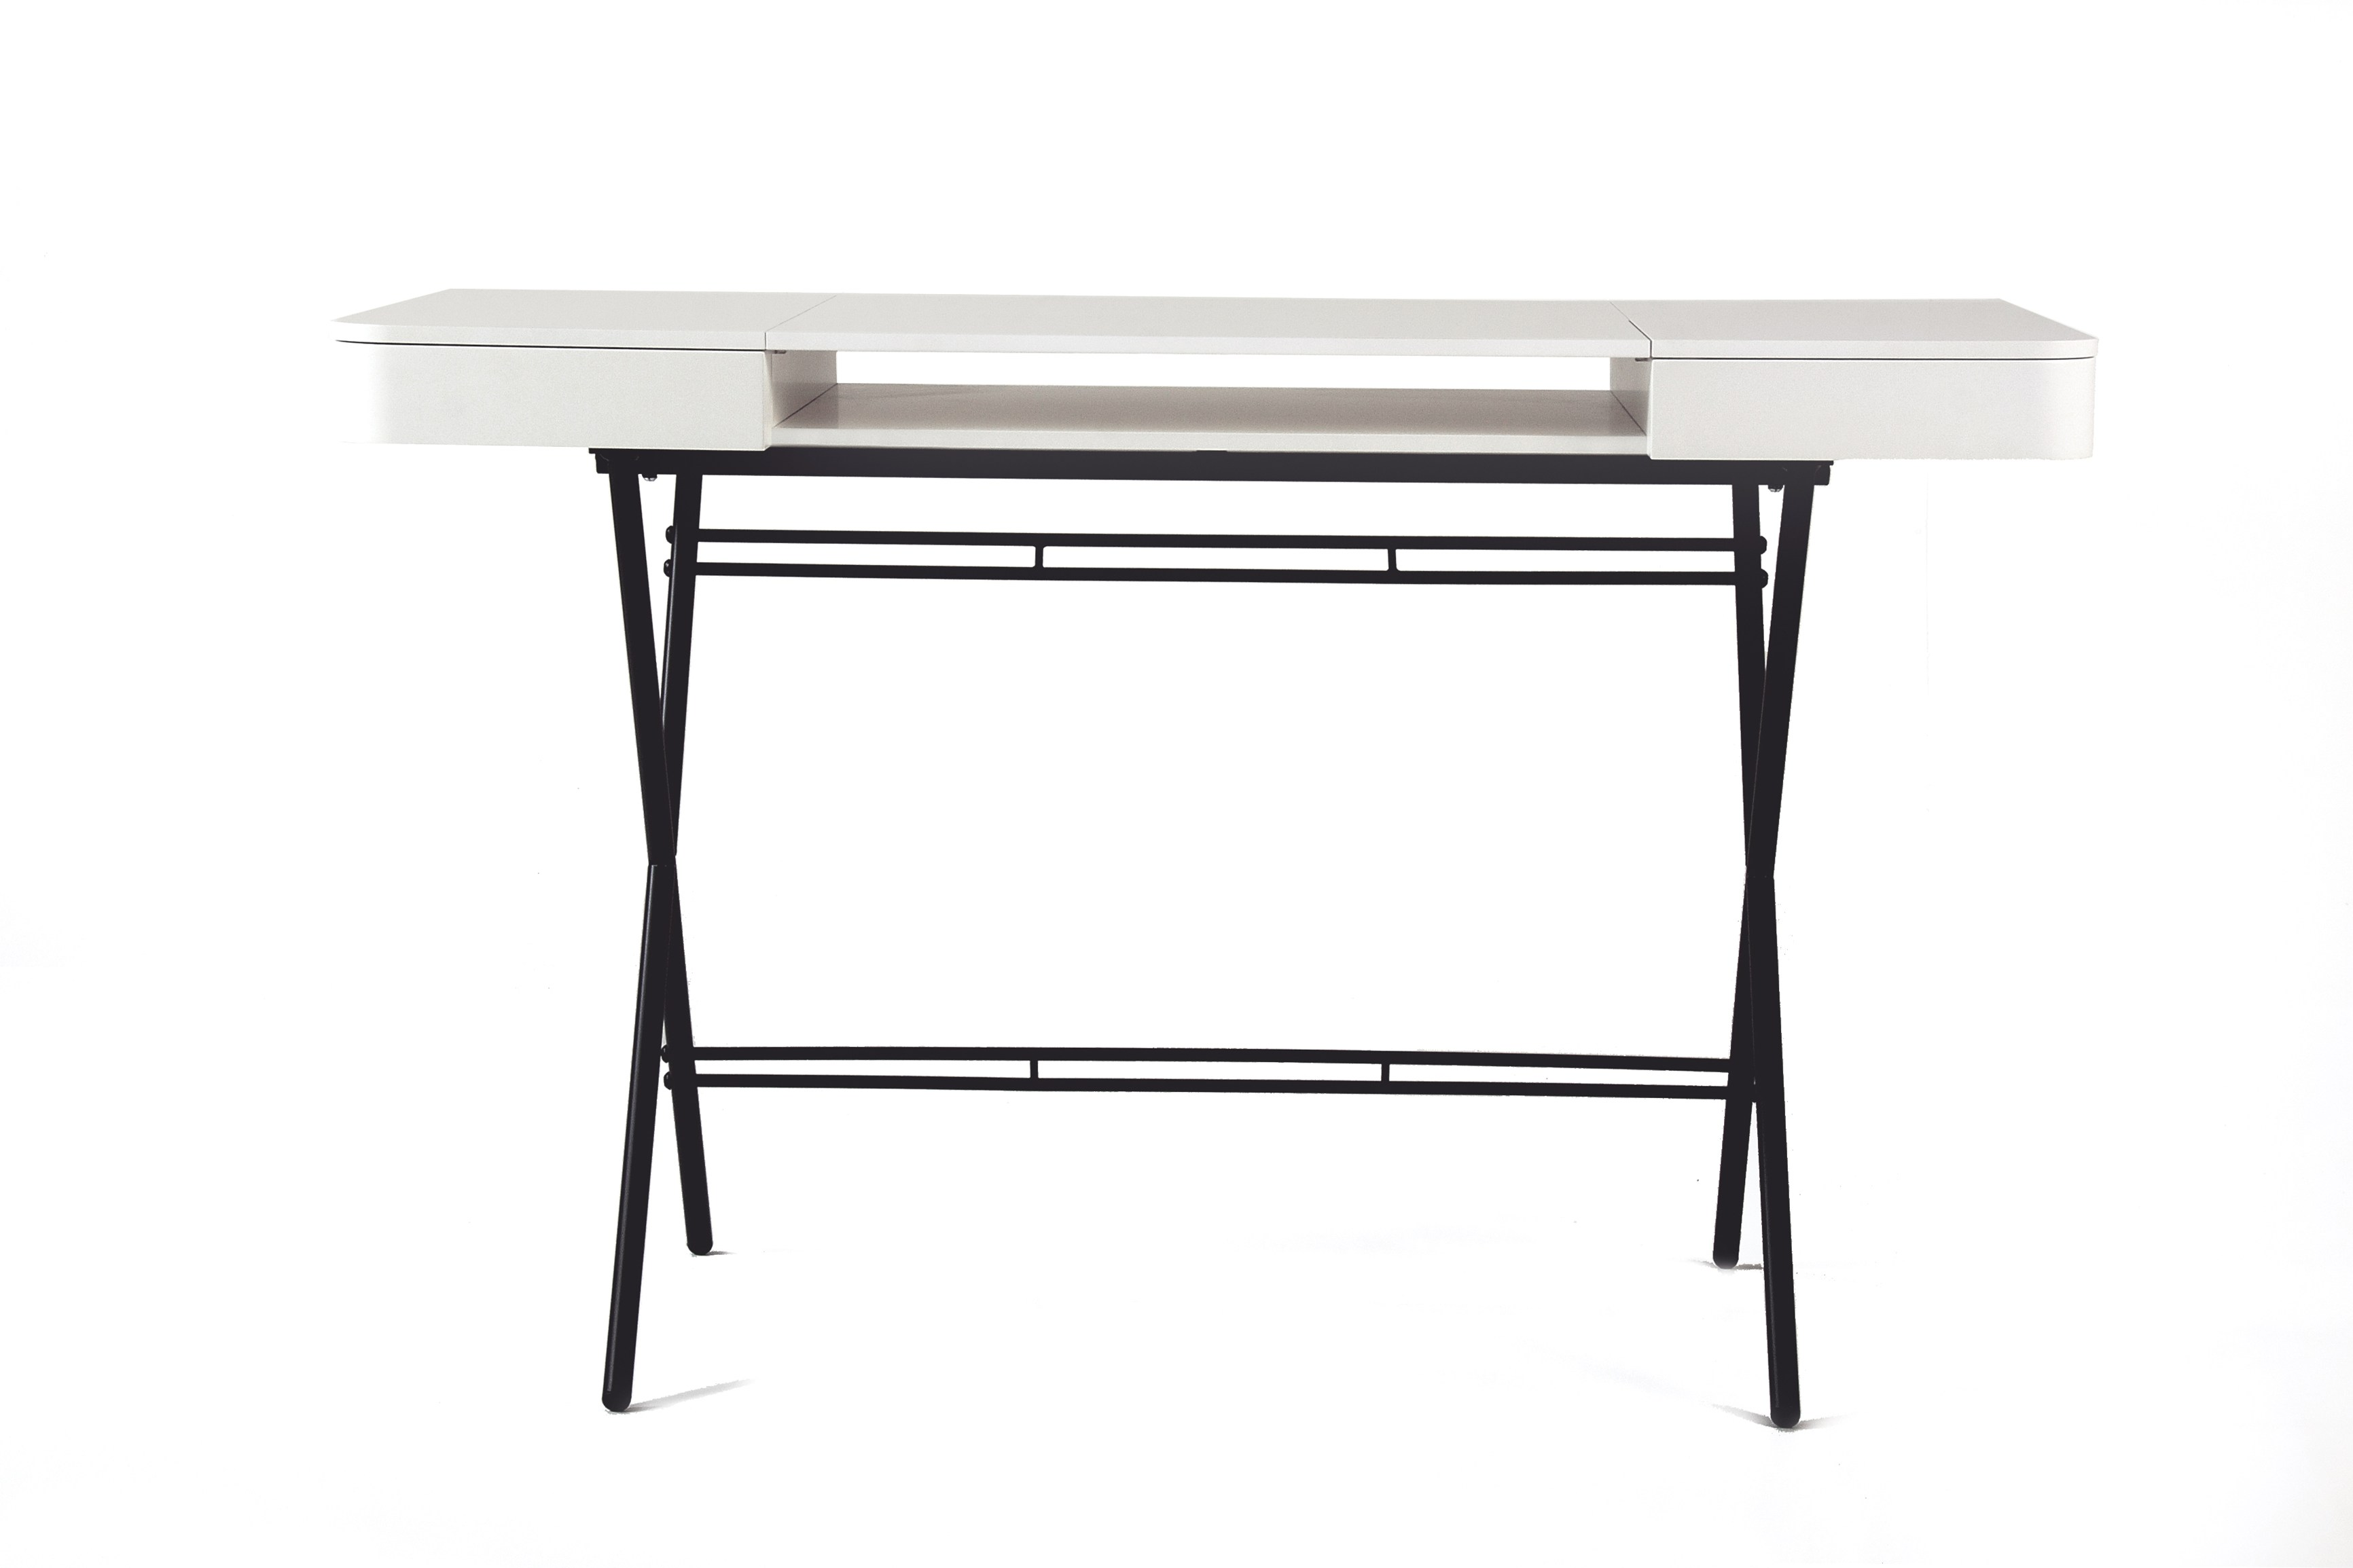 Fesselnd MDF Writing Desk With Drawers COSIMO LAQUÉ BLANC MAT   MDF Cosimo  Collection By Adentro Design Marco Zanuso